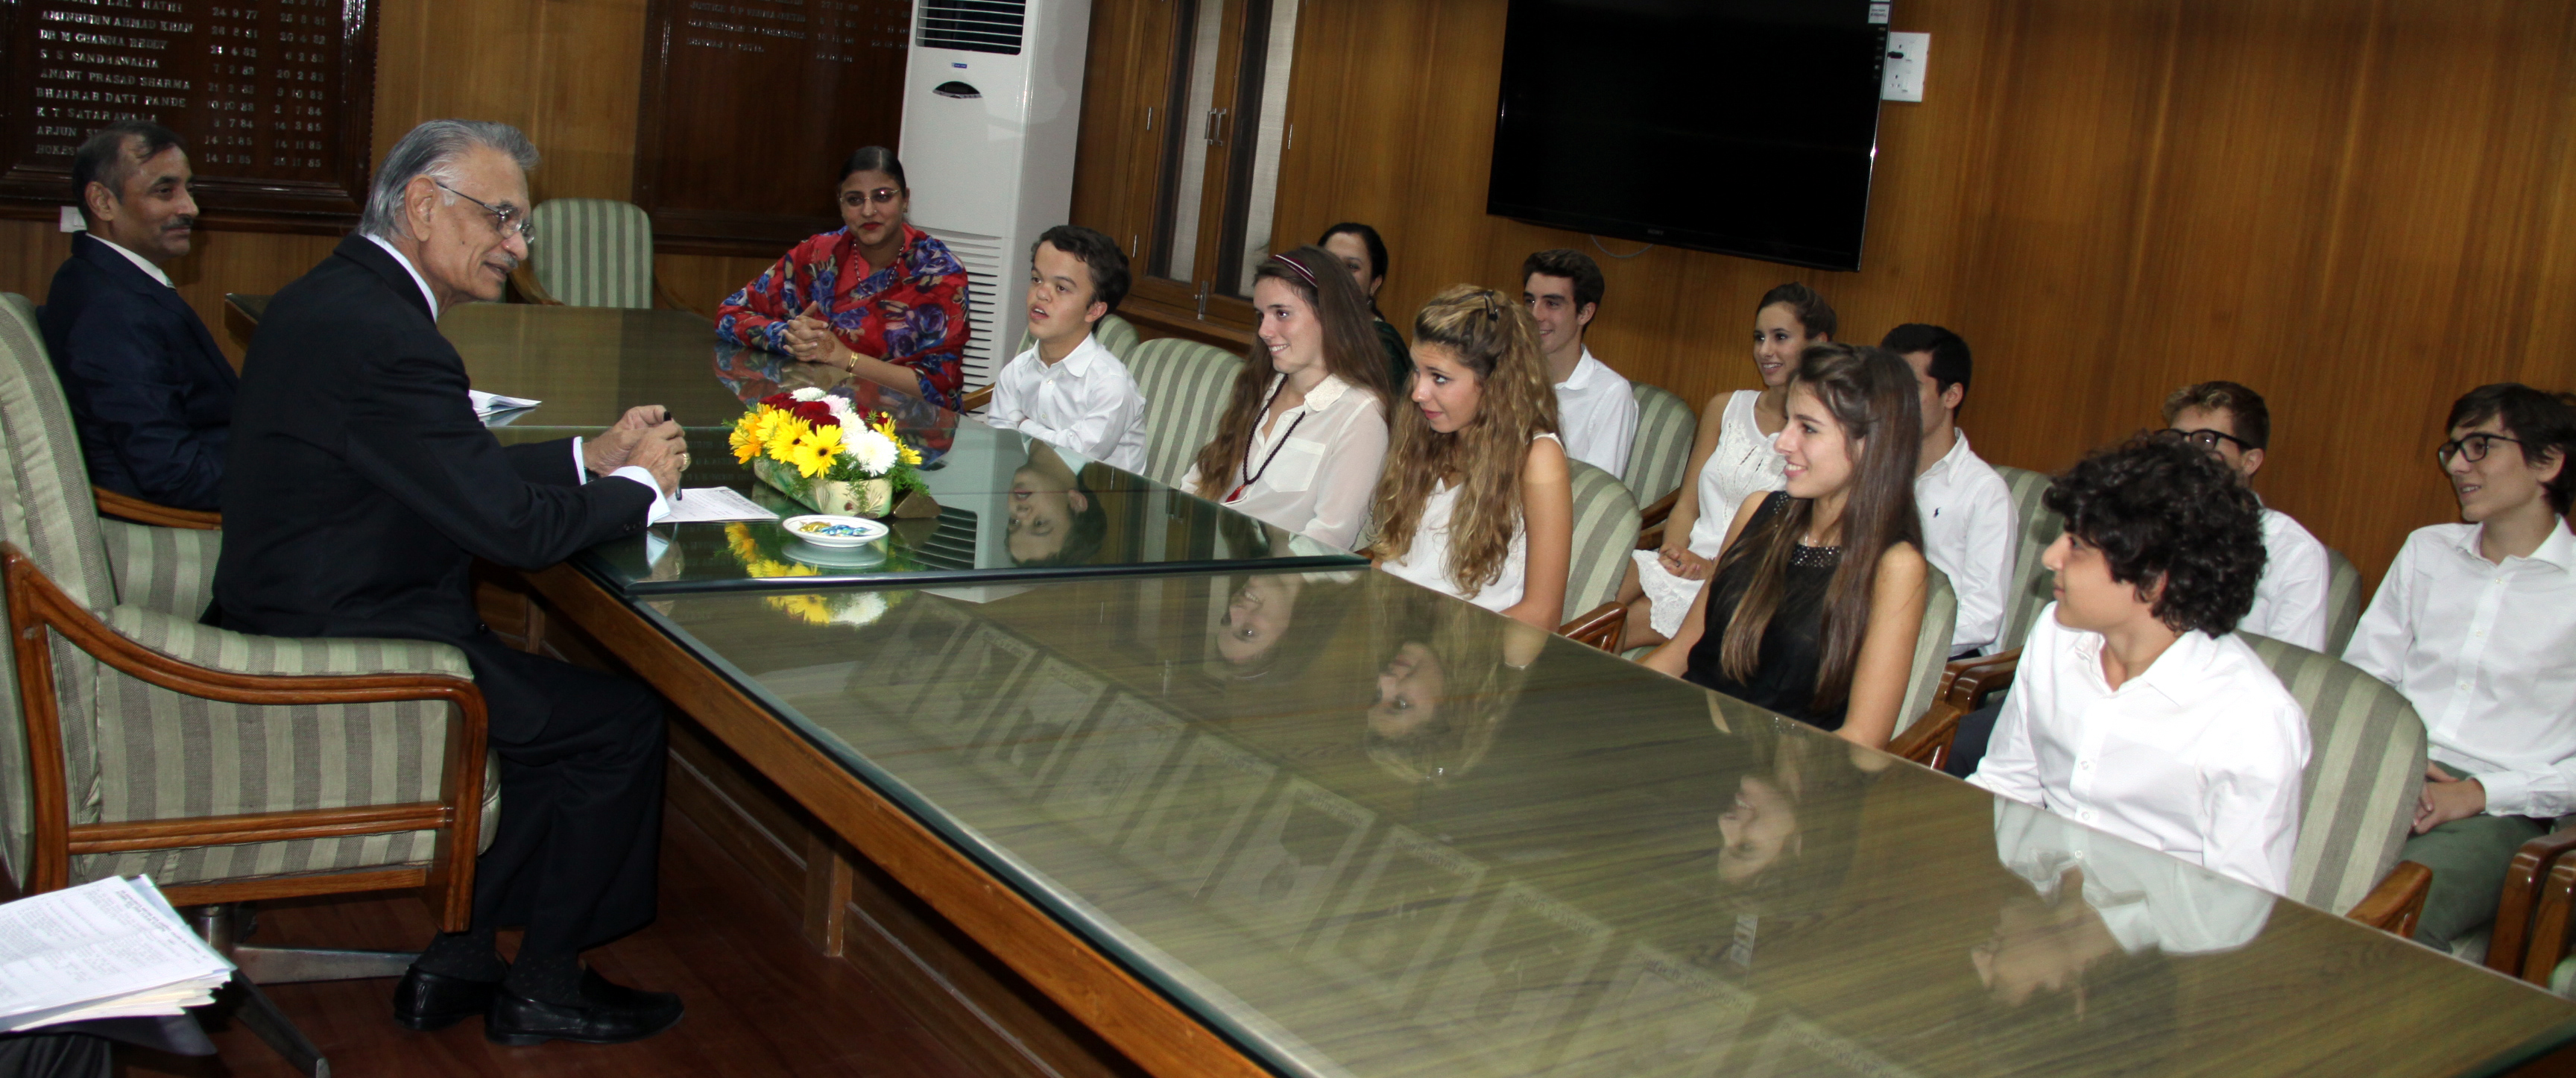 A team of ten Italian students from Collegio San Carlo, Milan, led by Mrs Sangeeta Sekhon today calls on Punjab Governor and Administrator U T Chandigarh, Mr Shivraj V. Patil at Punjab Raj Bhawan on 16-10-2014. These students are in the city as part of the cultural and educational exchange programme  being conducted by Strawberry Fields High School, Sector 26 and Collegio San Carlo.